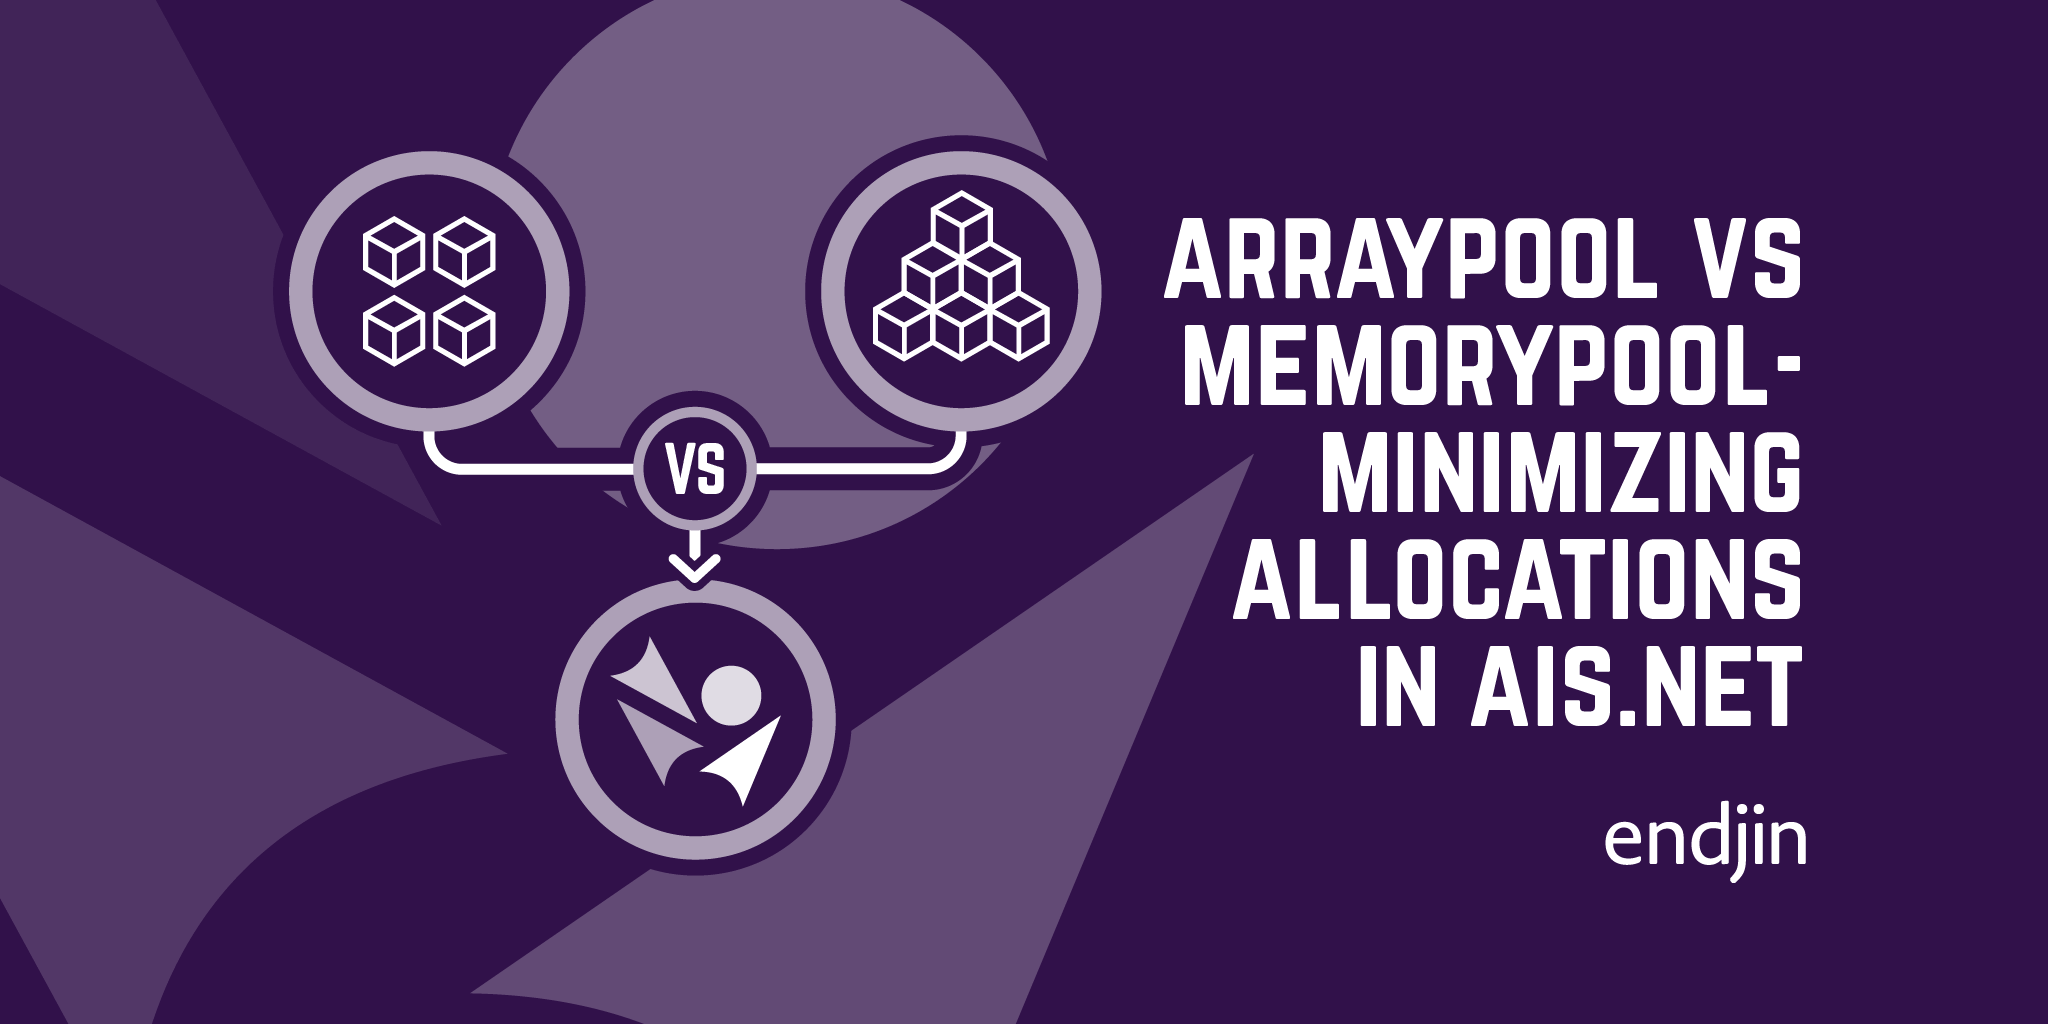 ArrayPool vs MemoryPool—minimizing allocations in AIS.NET